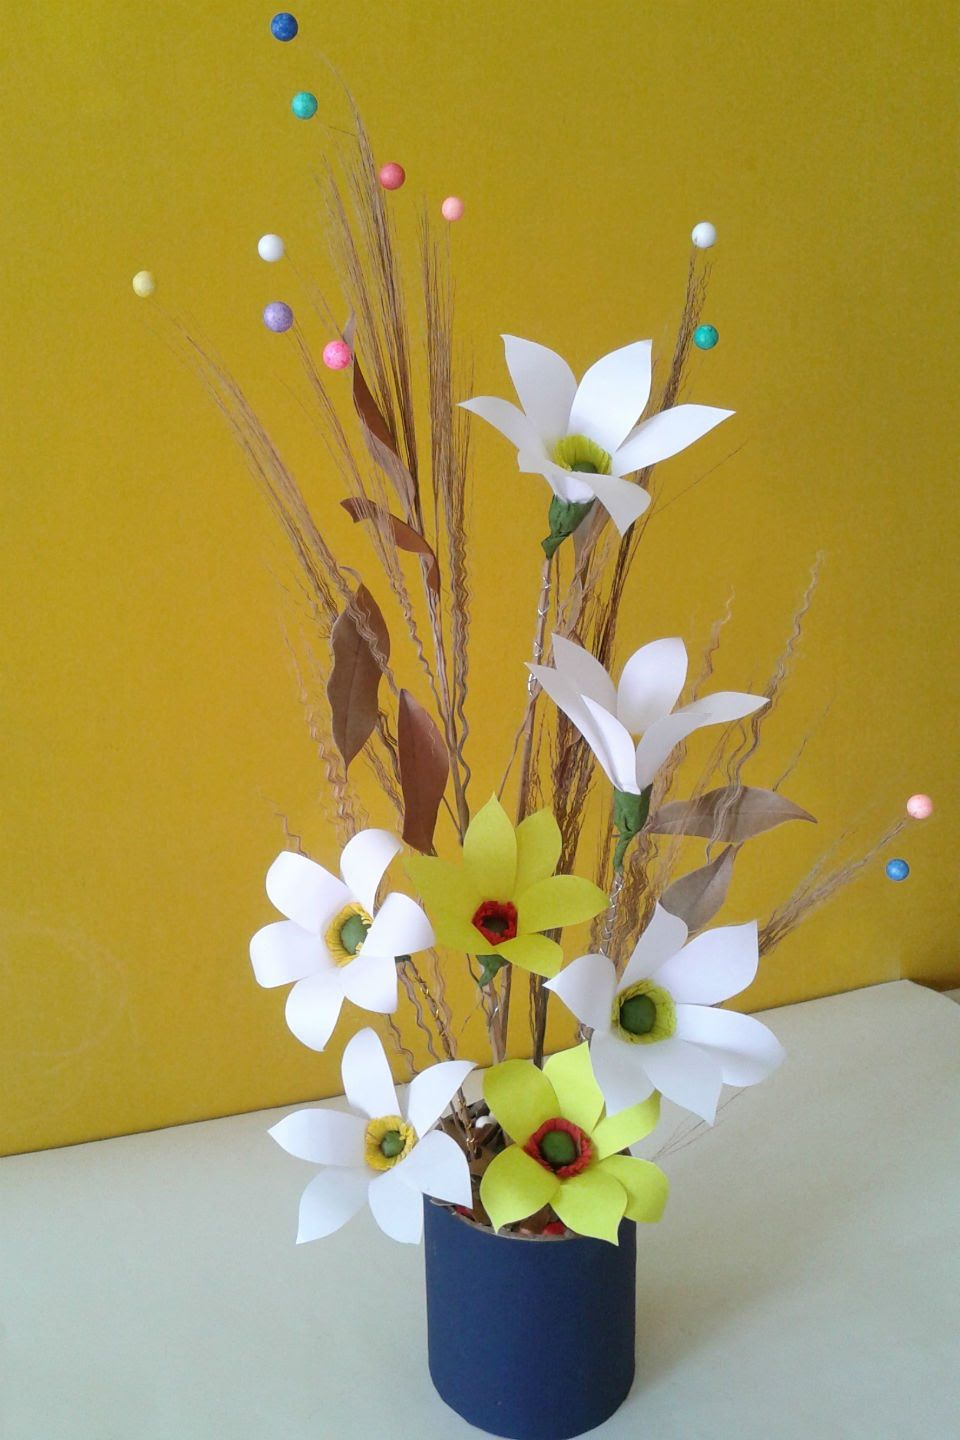 Best Of Waste Craft Ideas For Kids Part - 41: Easy Desk Decoration Ideas : Best Out Of Waste Craft Flower Decoration V.